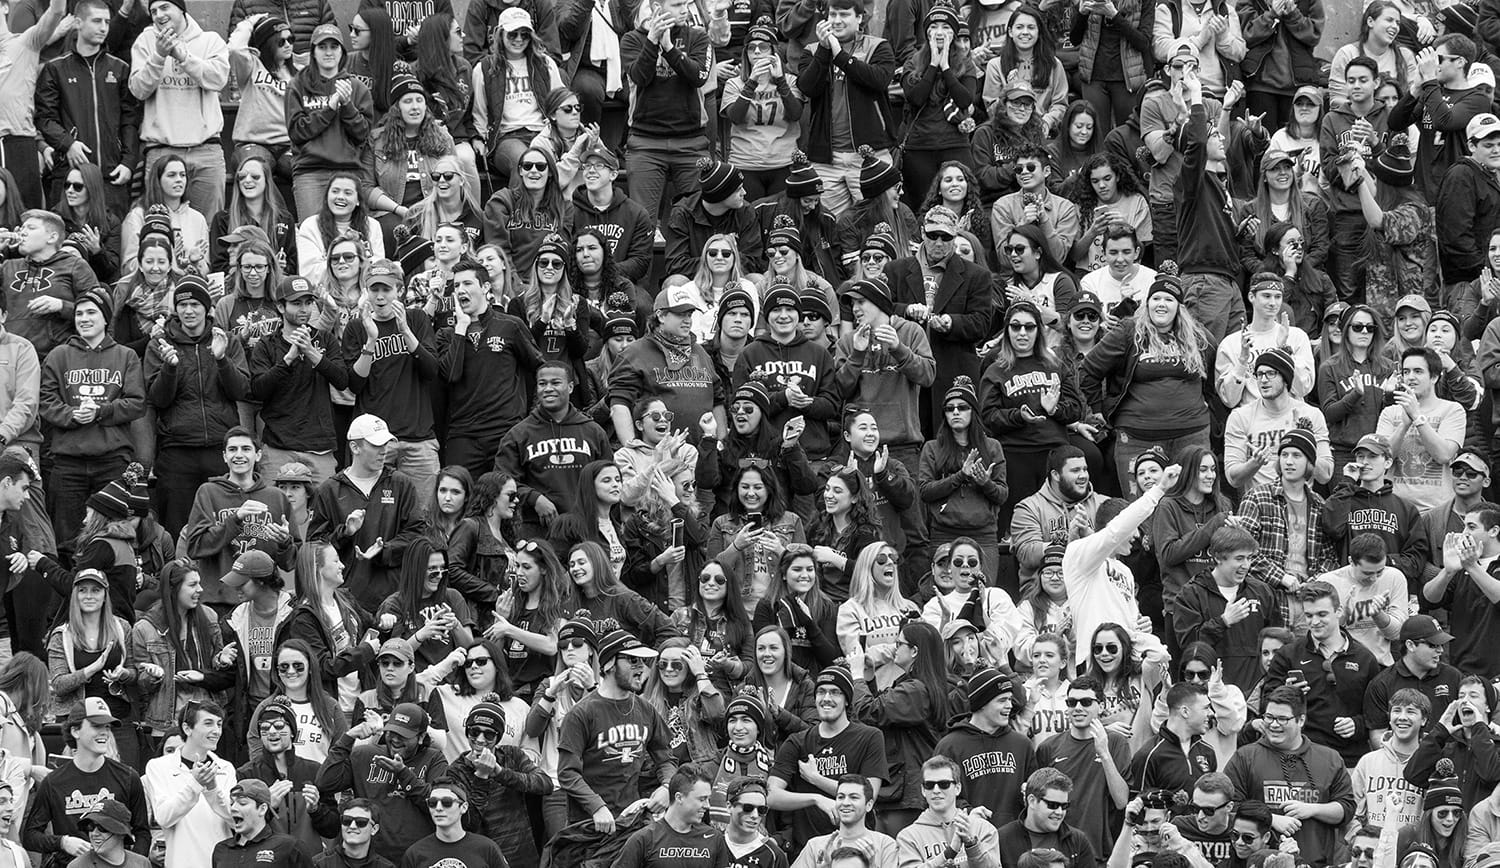 A crowd of Loyola students cheering at an athletics game